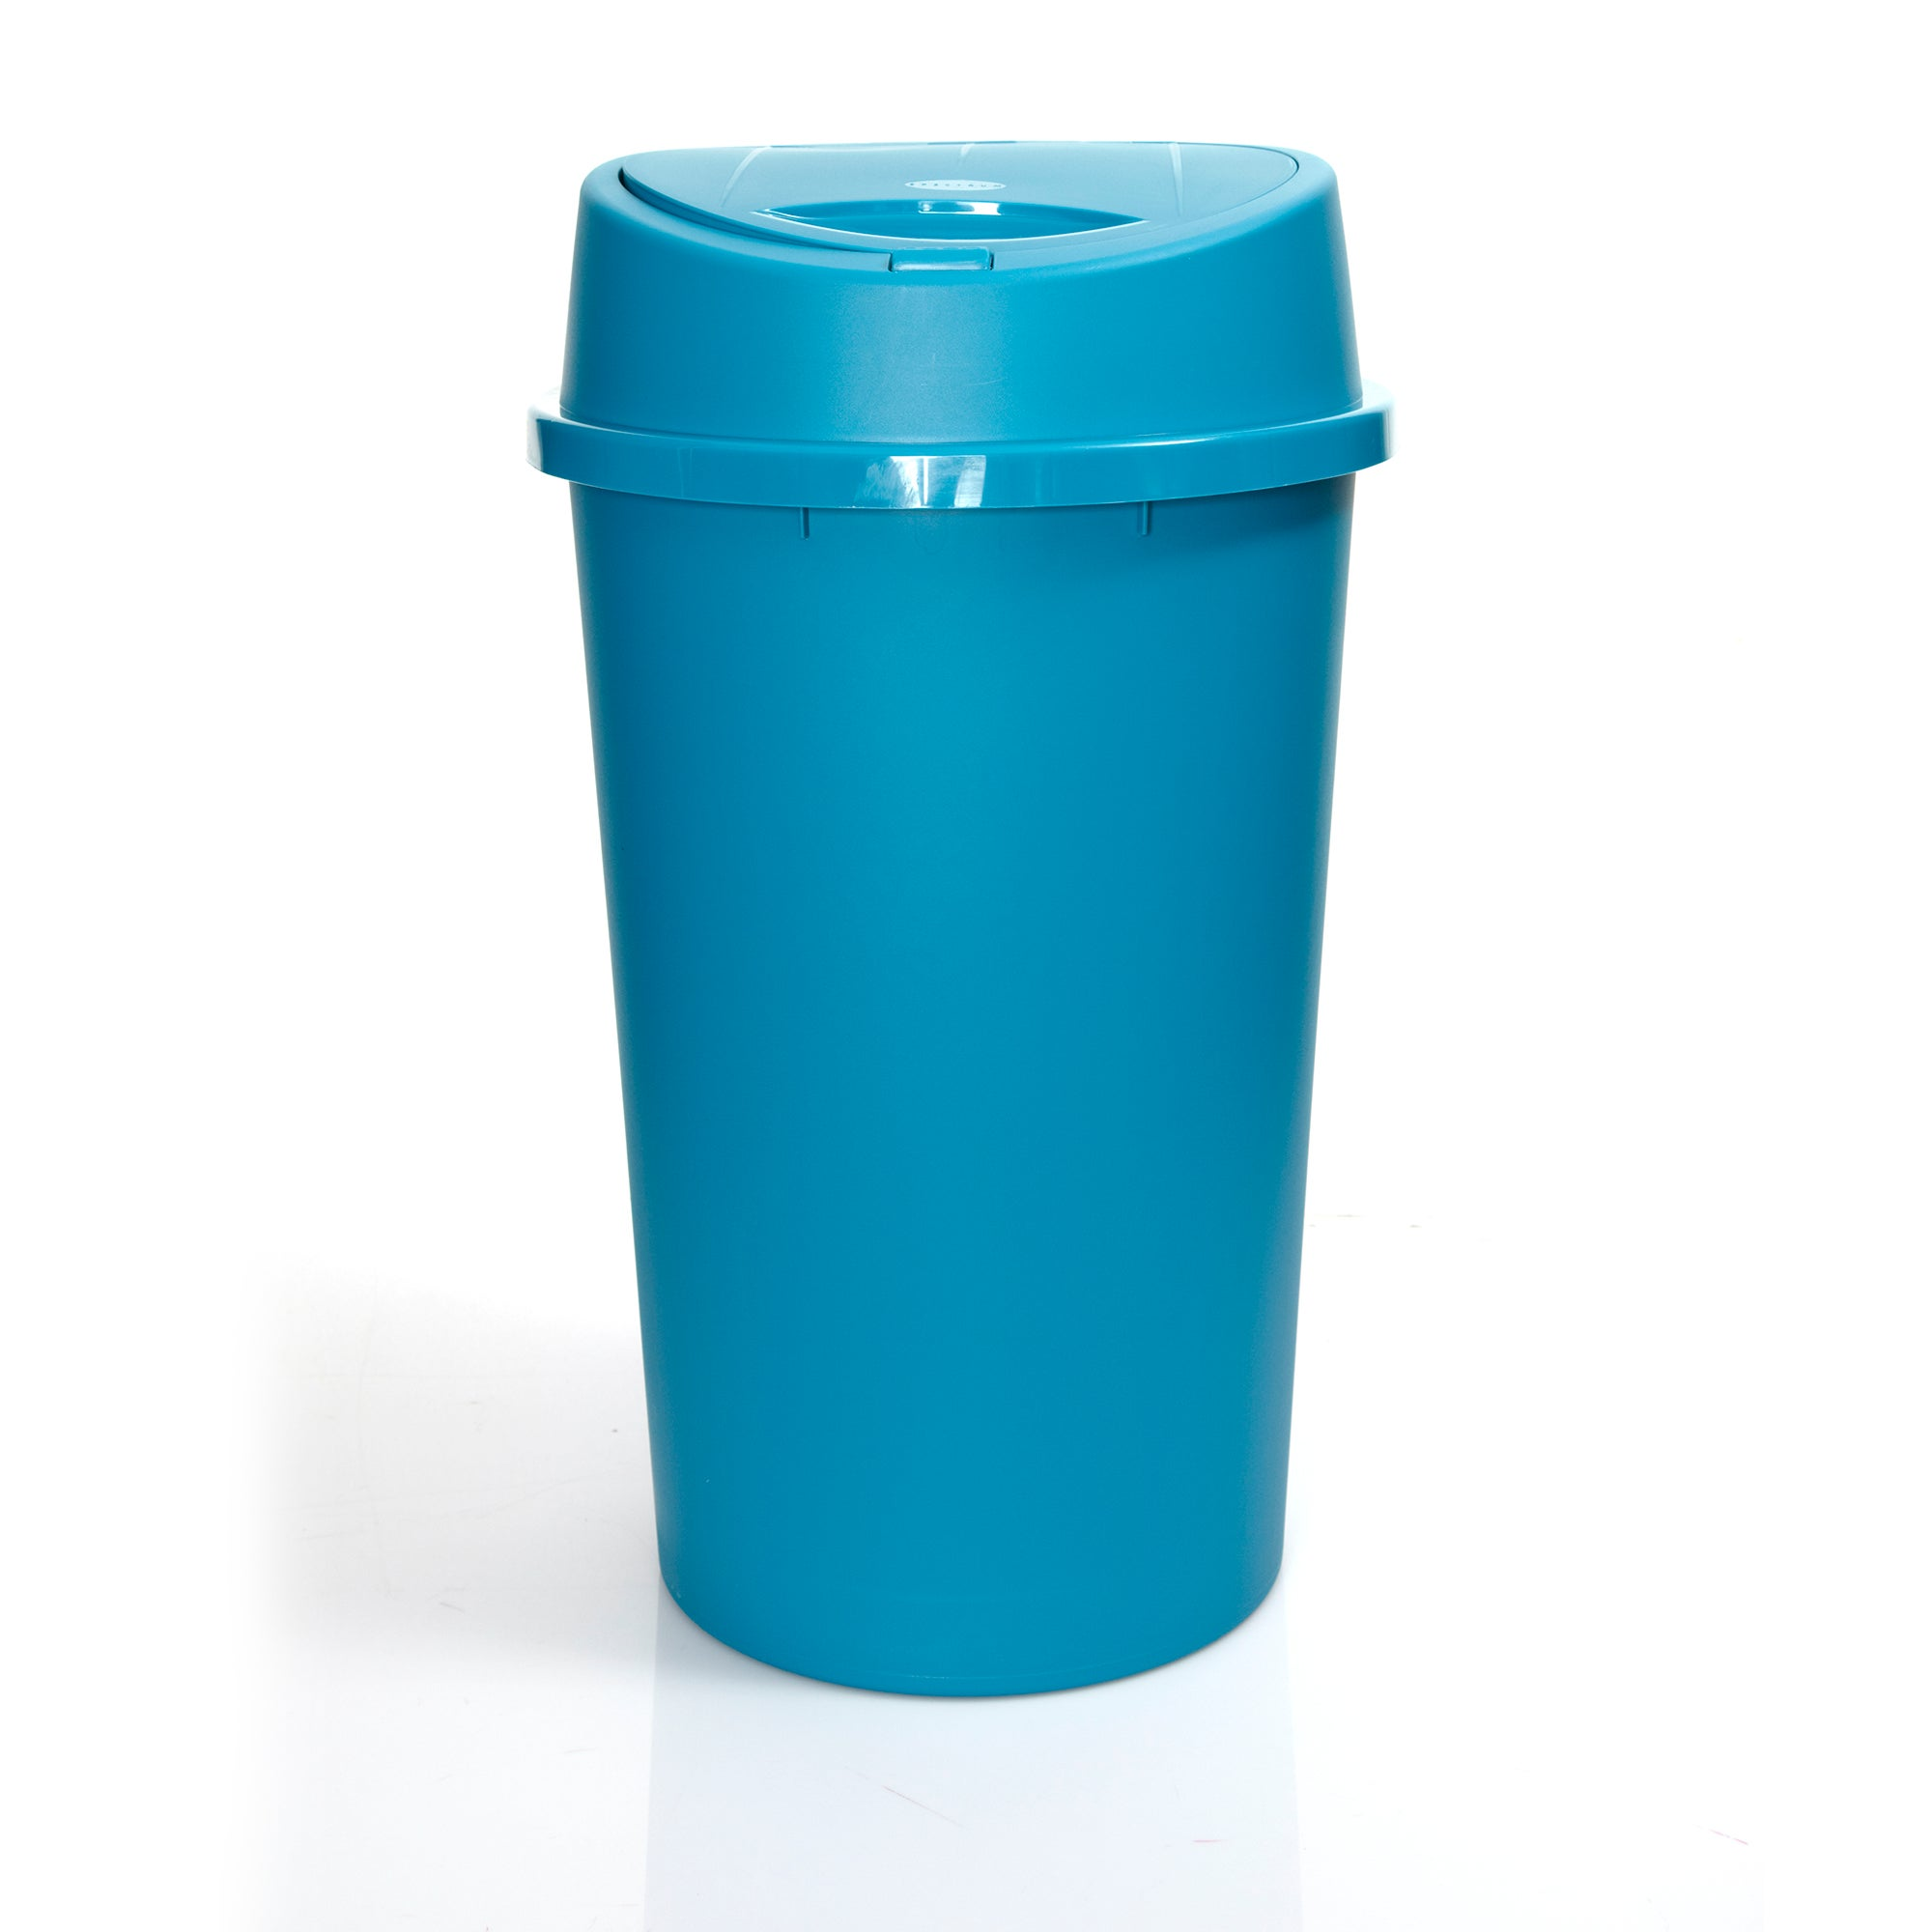 Teal Spectrum Collection 45 Litre Touch Bin